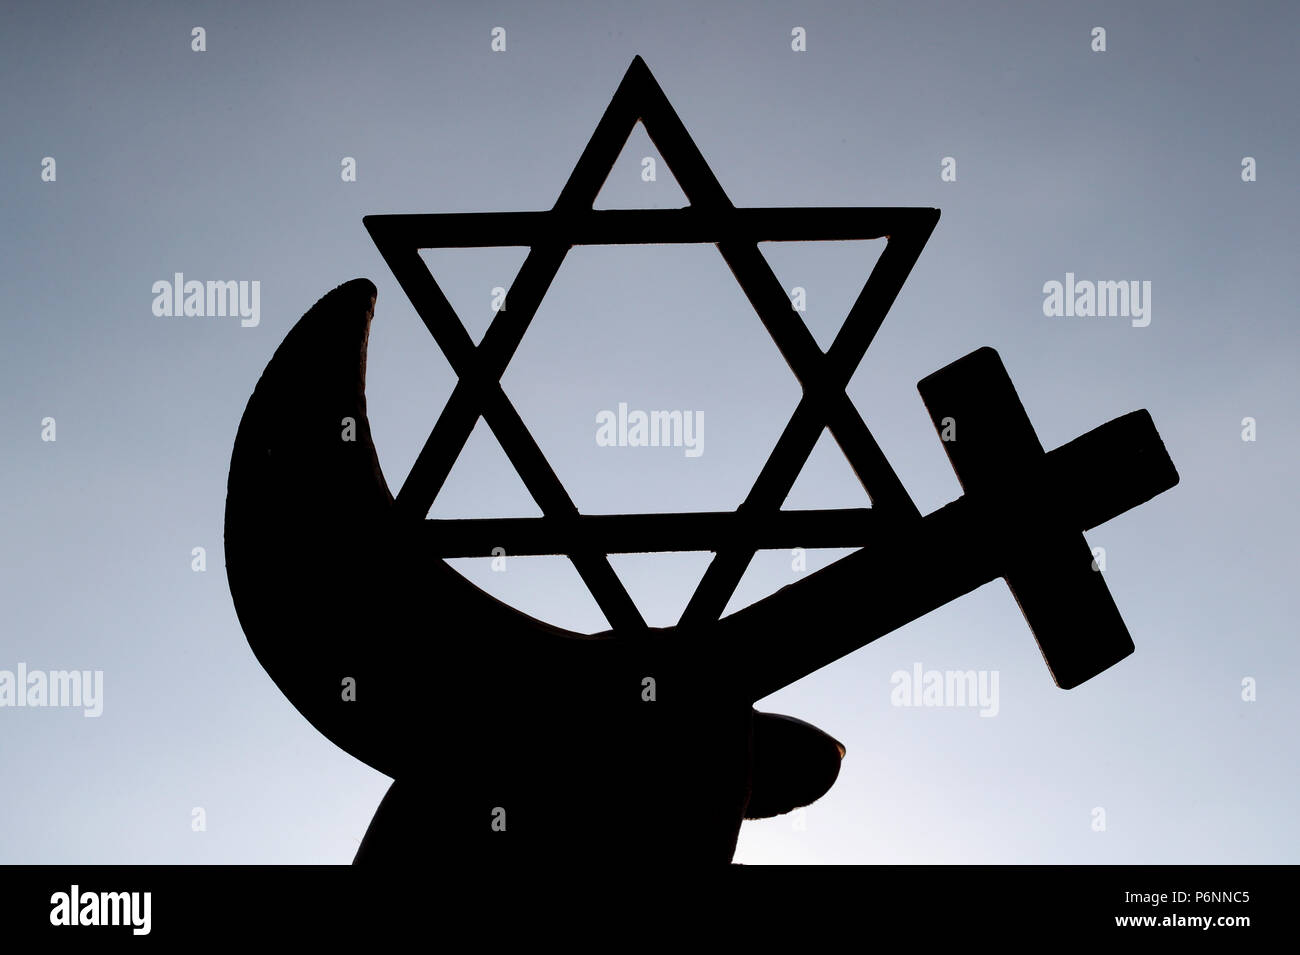 Christianity Islam Judaism 3 Monotheistic Religions Jewish Star